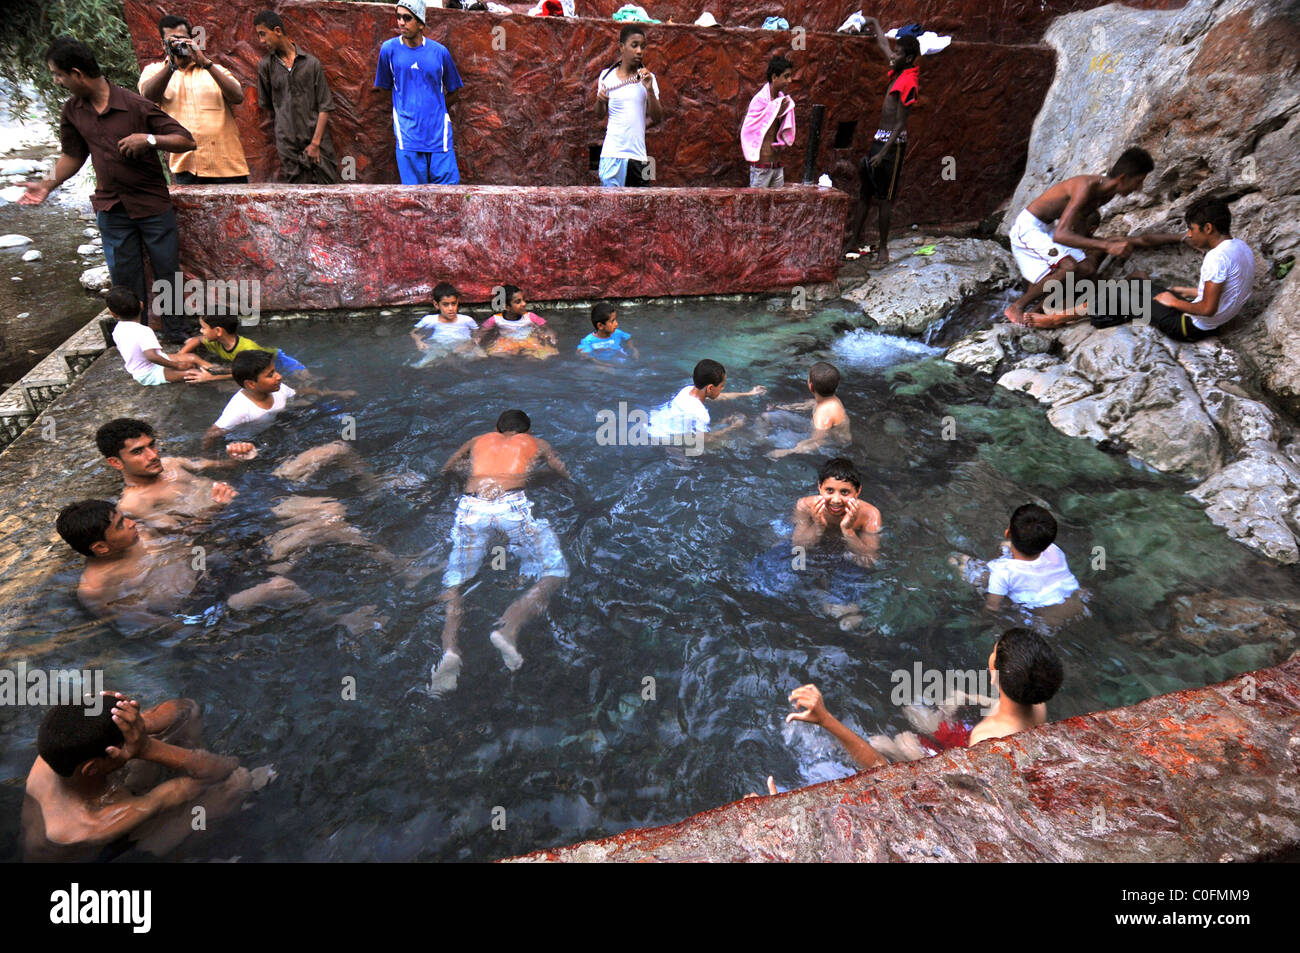 Youths bathing in the hot spring water at Nakhal. The Sultanate of Oman. - Stock Image